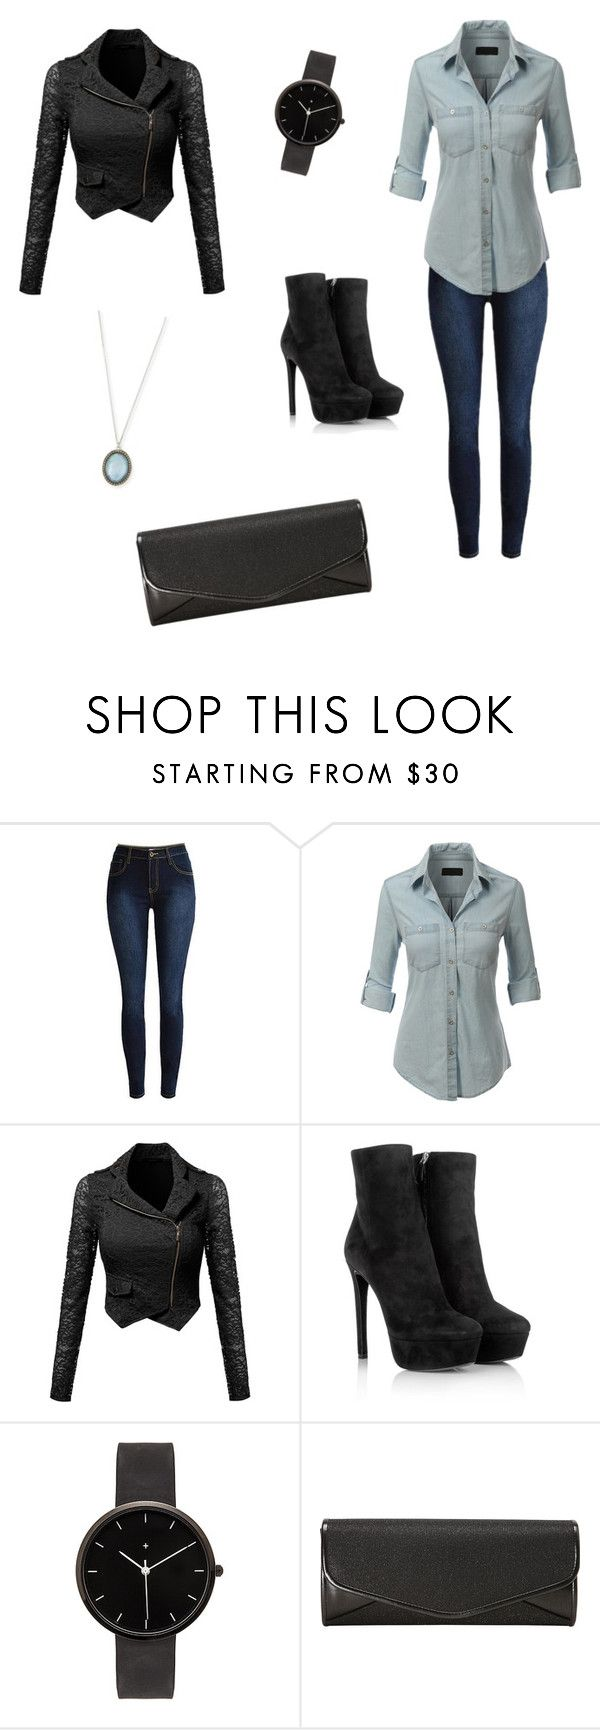 """KATE BECKETT INSPIRED OUTFIT"" by caitzzz ❤ liked on Polyvore featuring LE3NO, Prada, I Love Ugly, J. Furmani, Armenta, women's clothing, women, female, woman and misses"